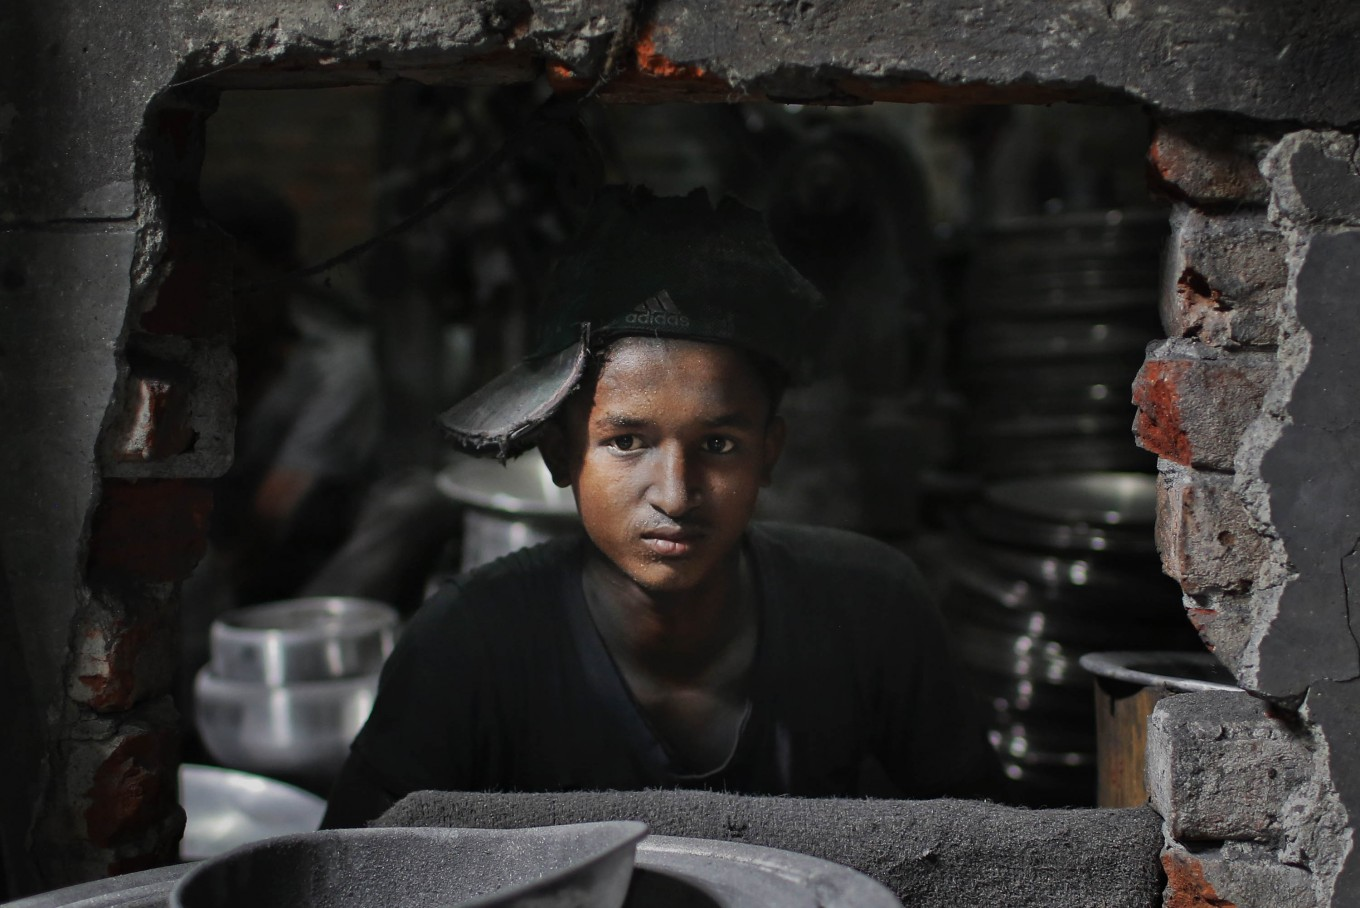 Bangladeshi boy Rubel, 12, looks towards camera as he works at a factory that makes metal utensils in Dhaka, Bangladesh, Sunday, June 12, 2016. He earns less than $5 per week. AP Photo/ A.M. Ahad